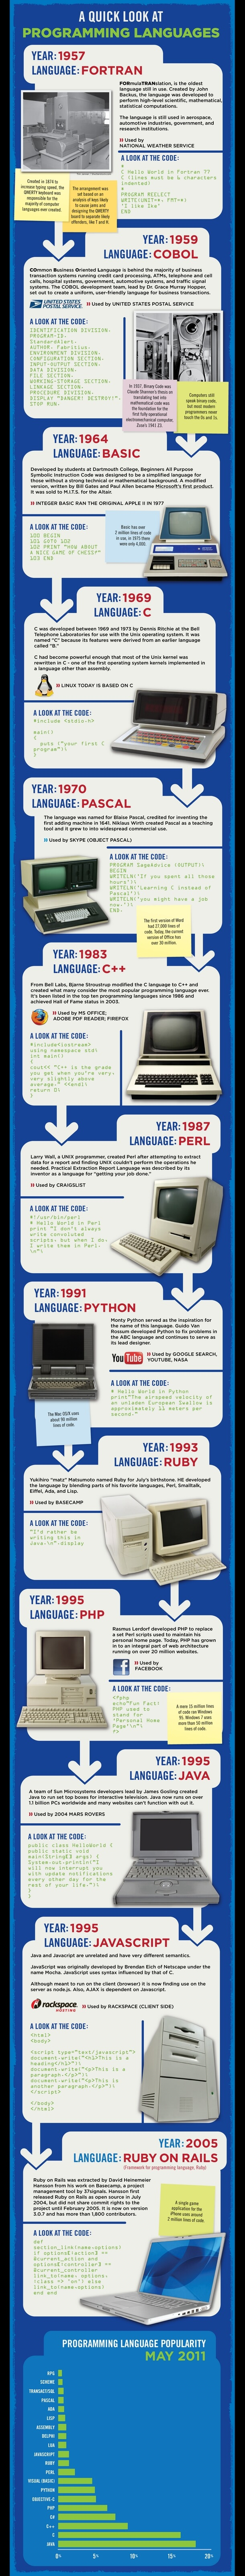 Infographic Programming Rackspace